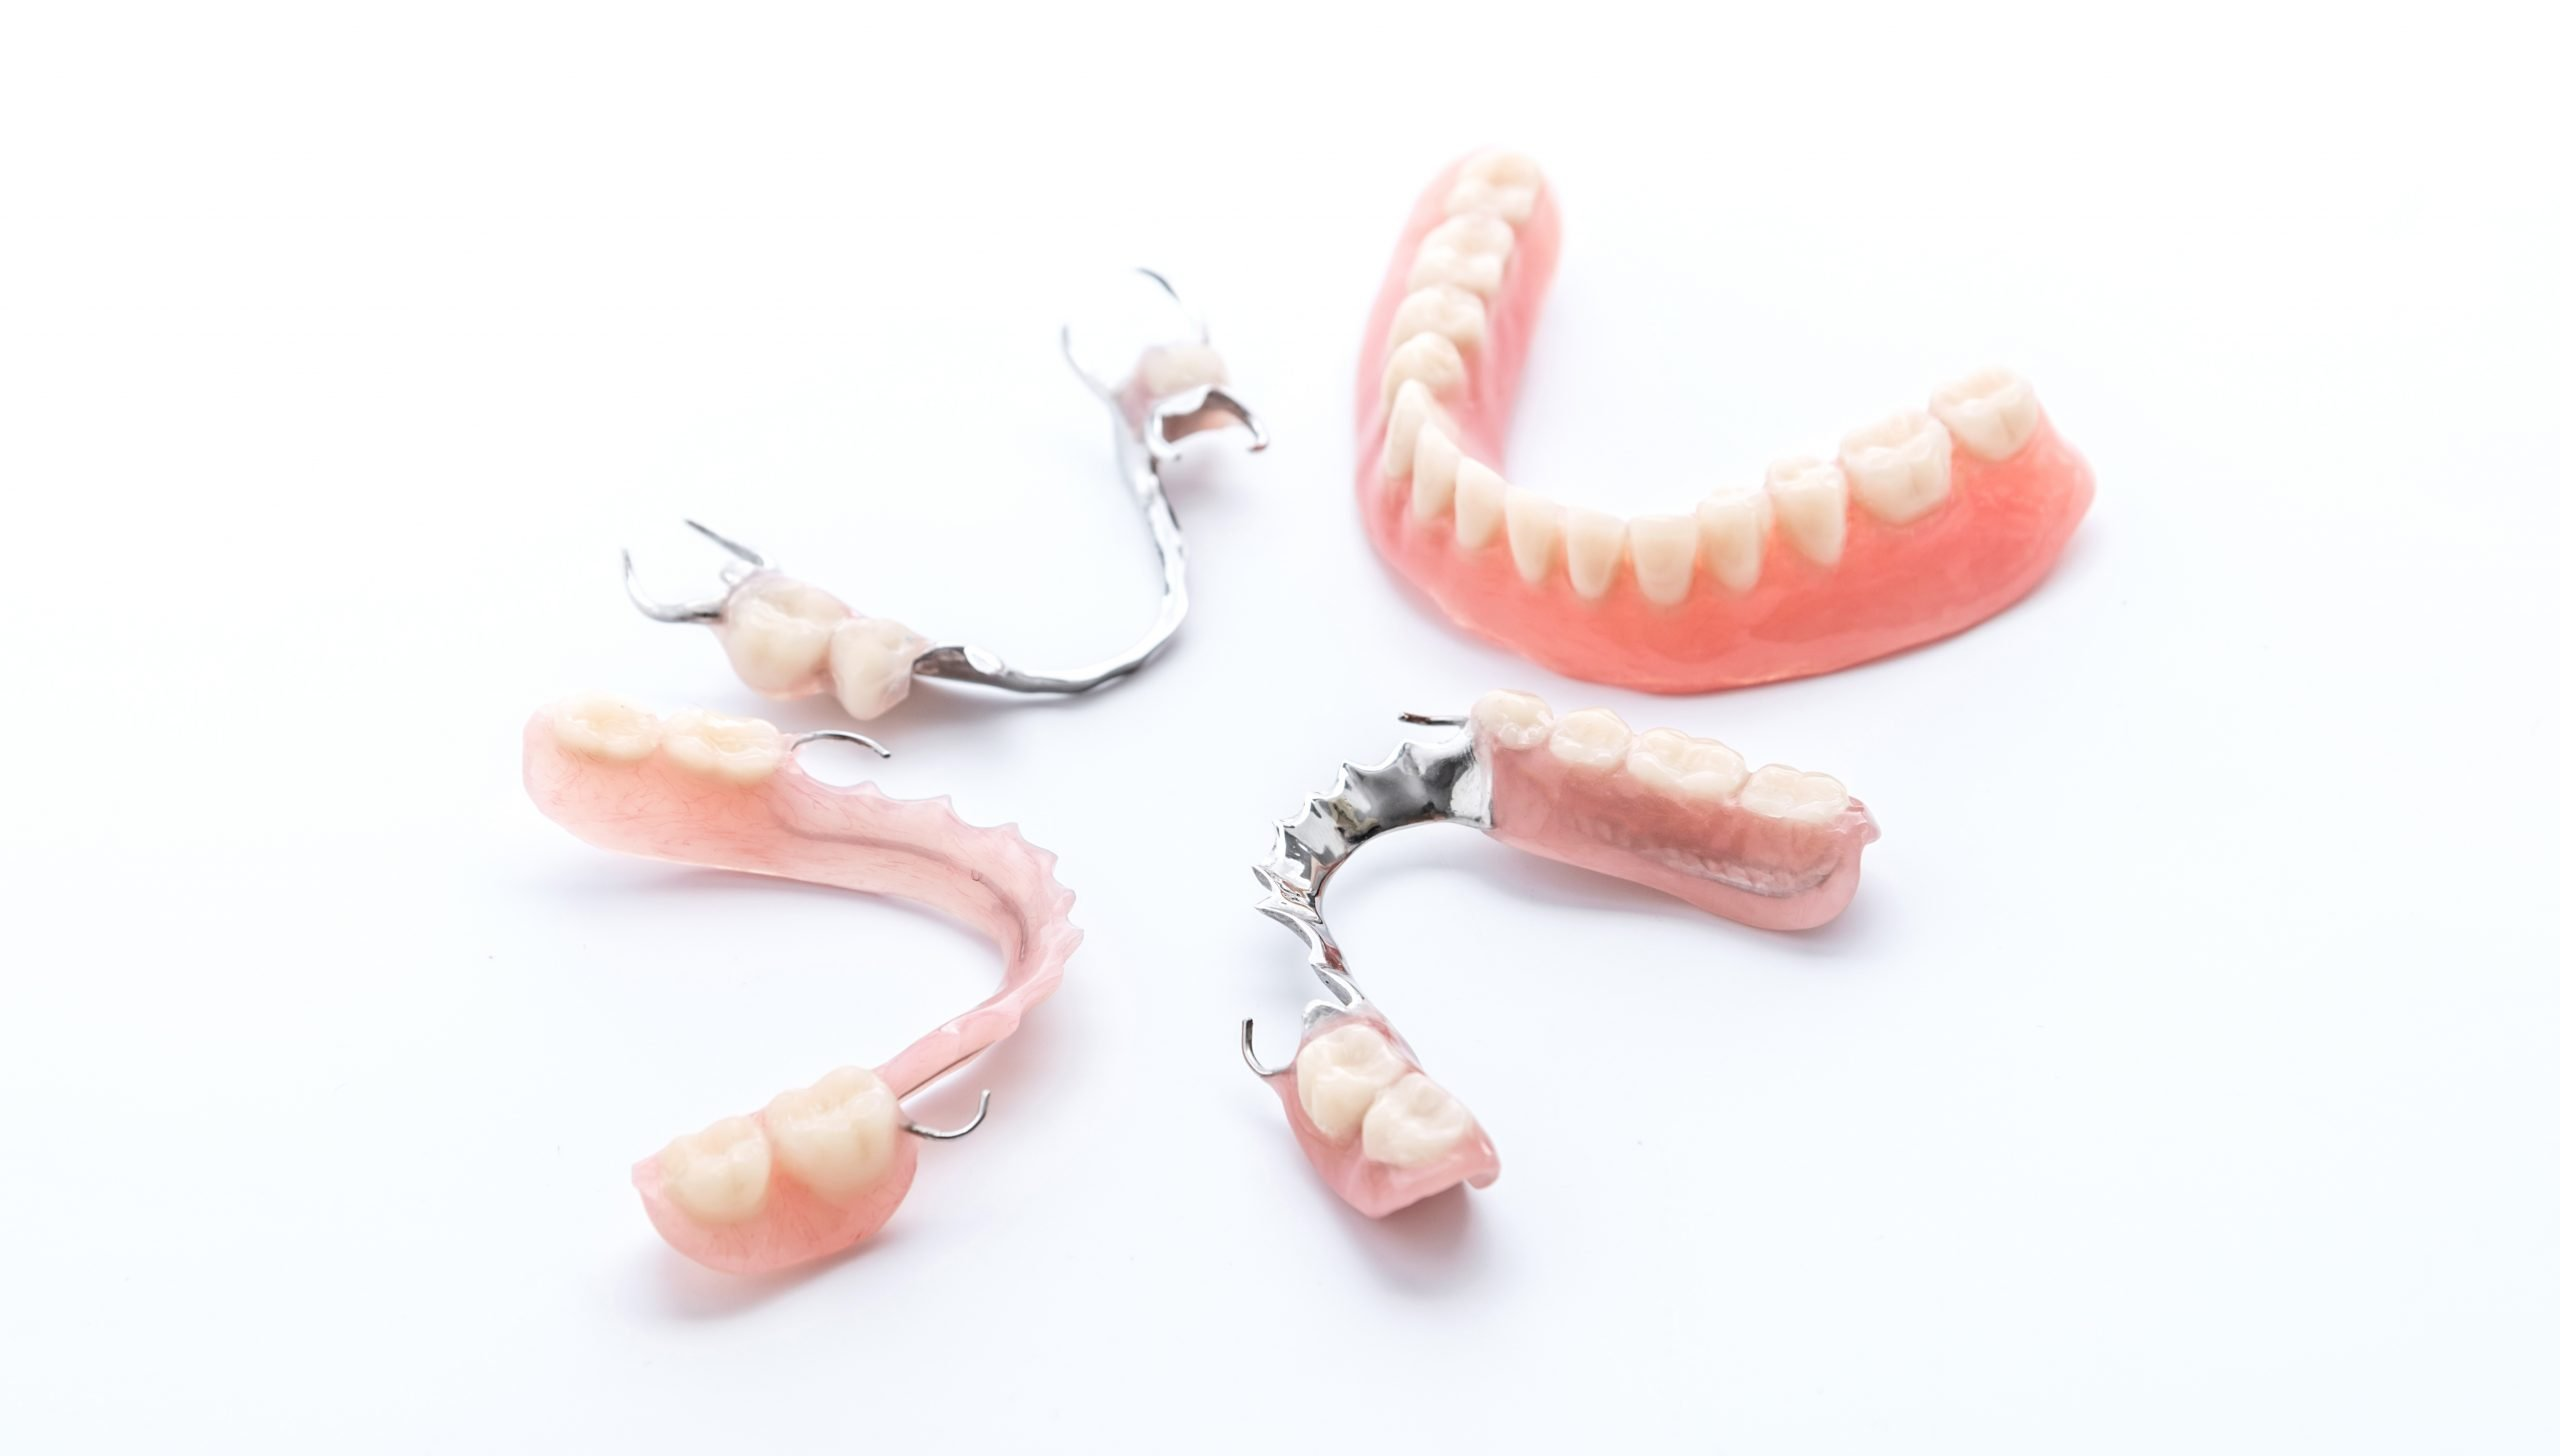 Parts of dentures on white background